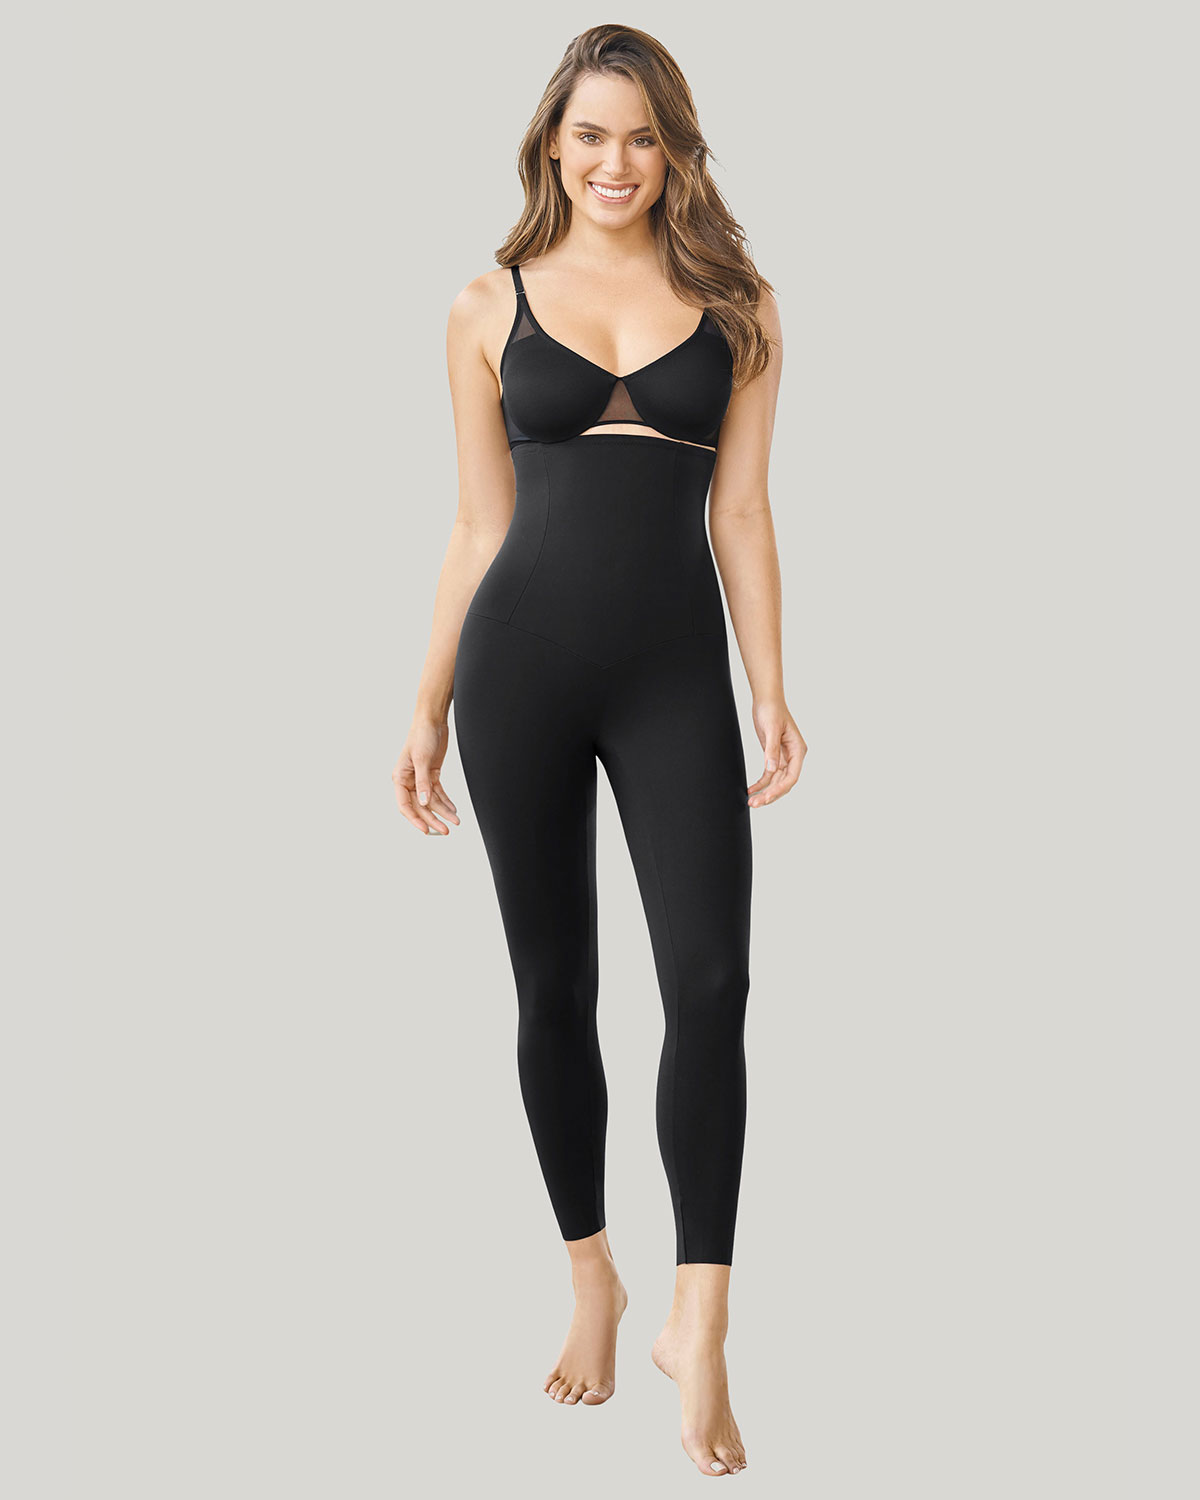 ActiveLife Max Power Extra-High-Waisted Firm Compression ...